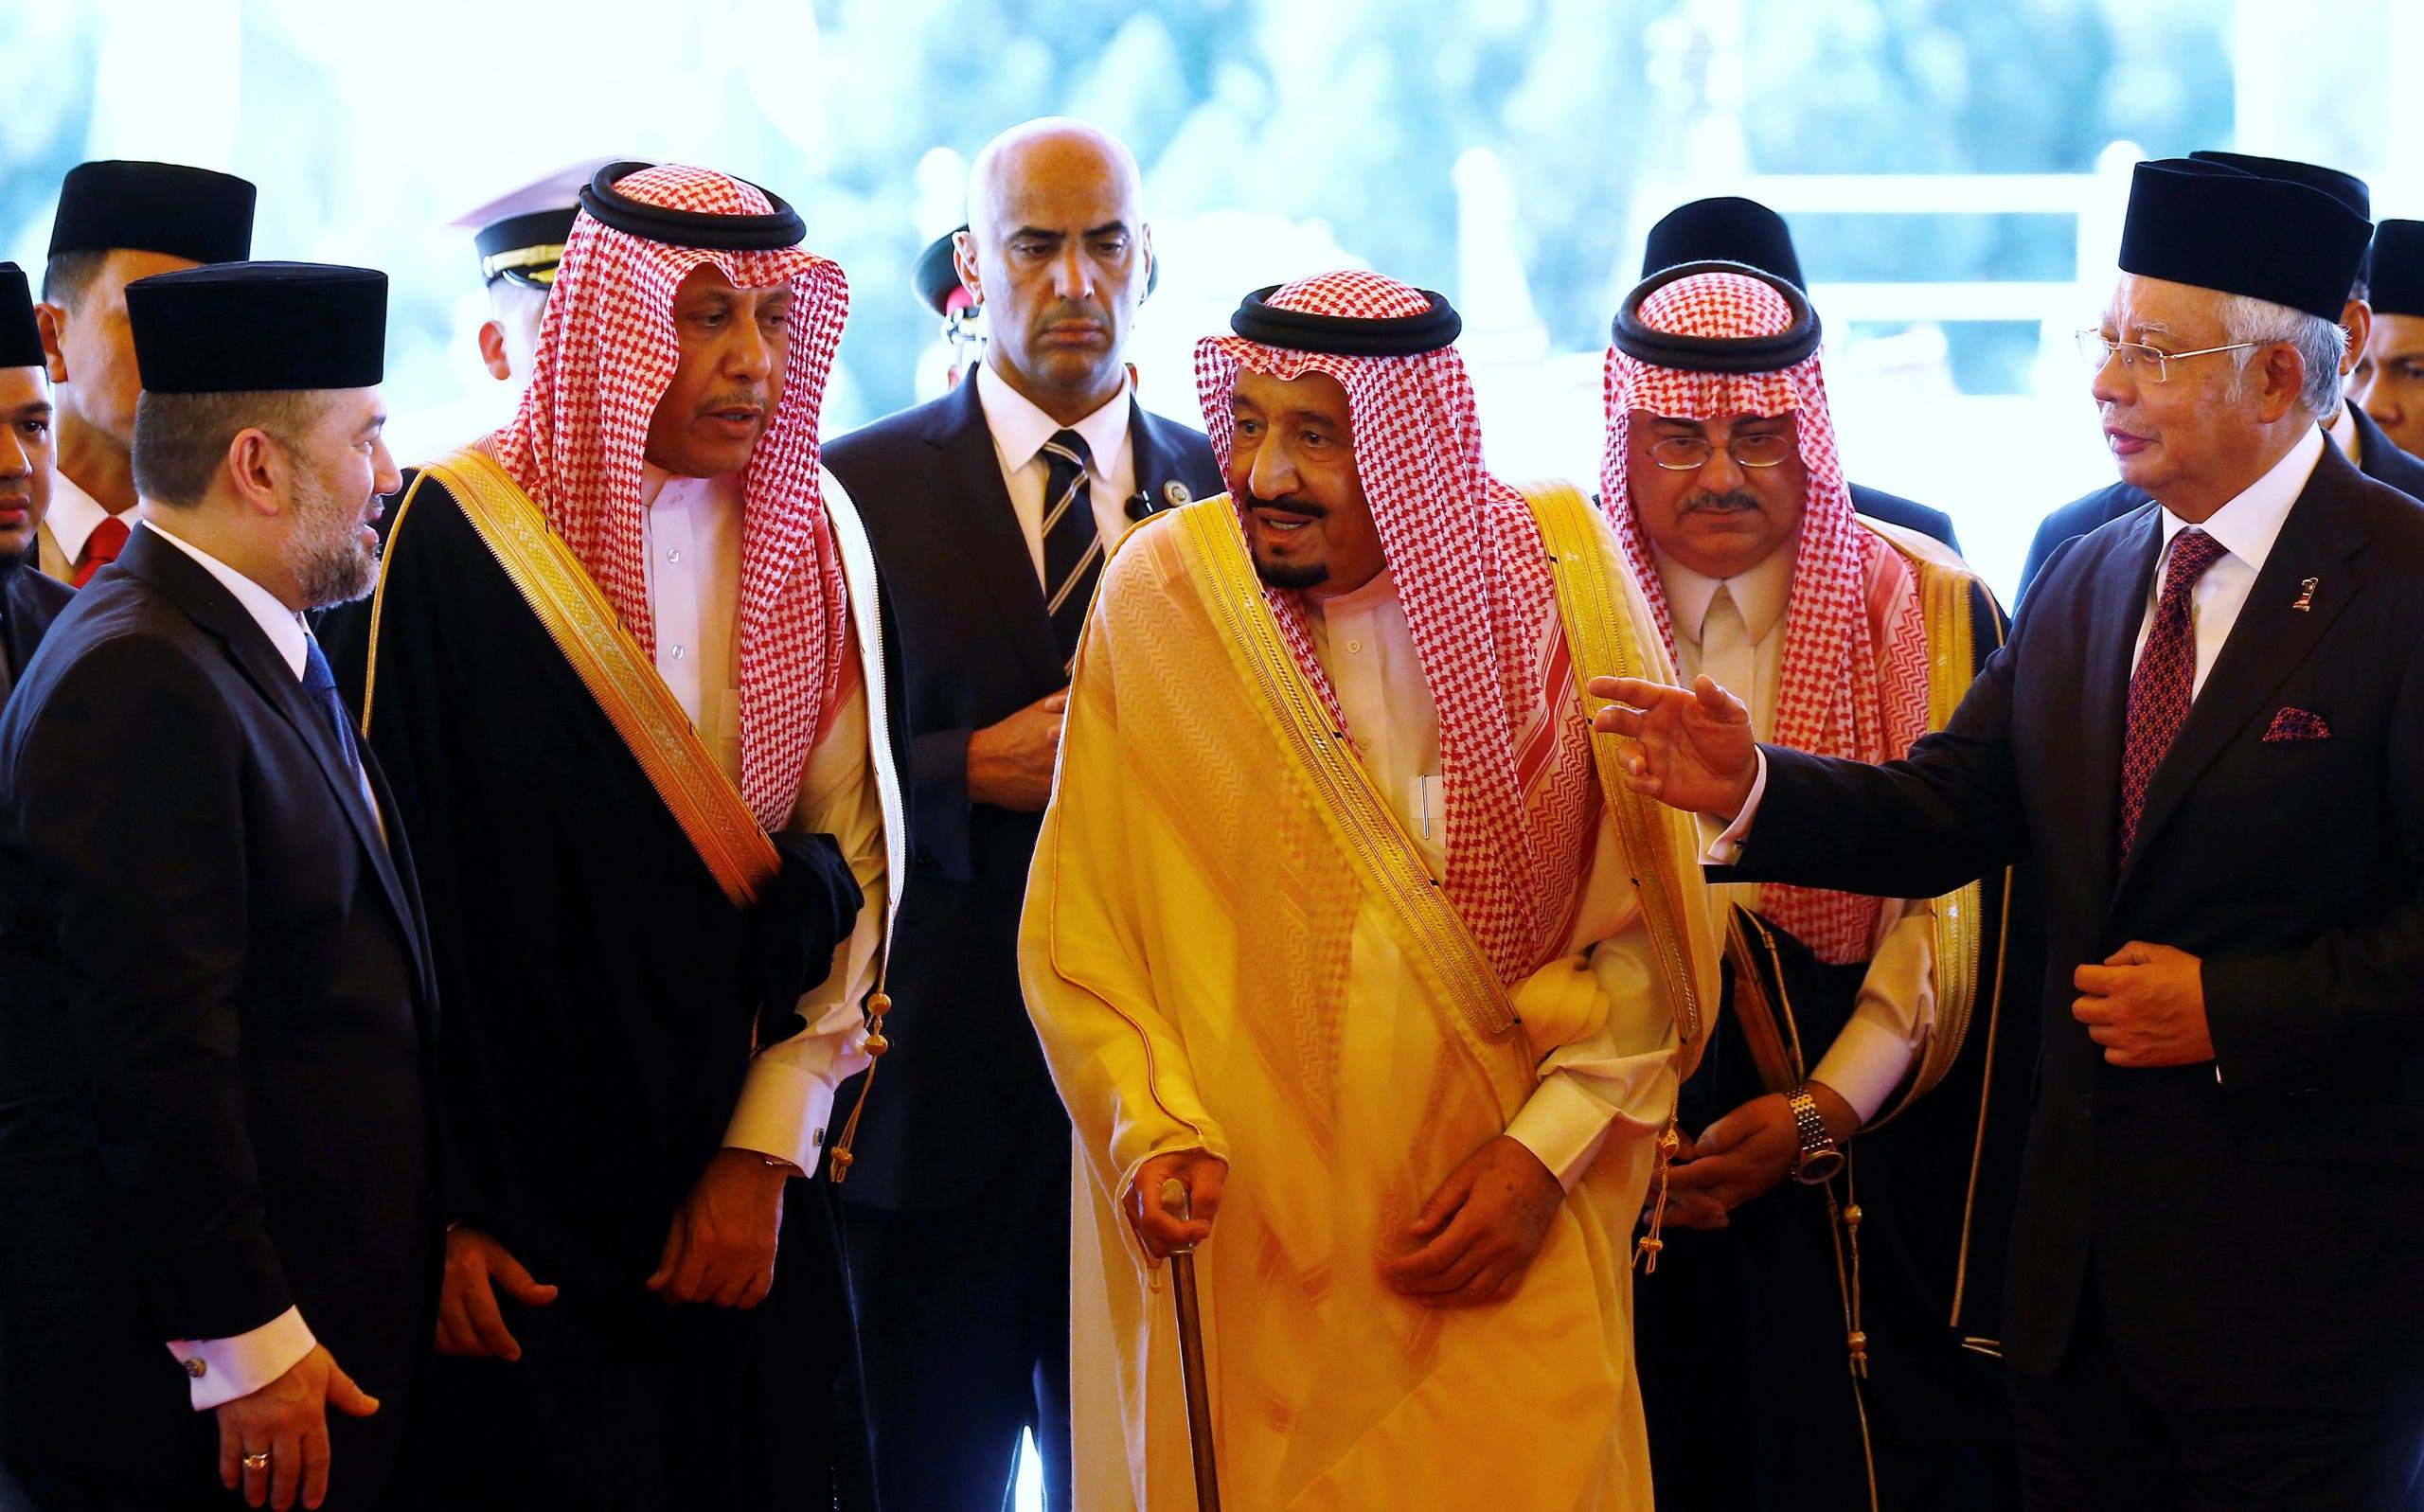 Saudi Arabia's King Salman leaves after inspecting an honor guard with Malaysia's Prime Minister Najib Razak (right) and Malaysia's King Muhammad V (left) at the Parliament House in Kuala Lumpur, on February 26, 2017. (Reuters)